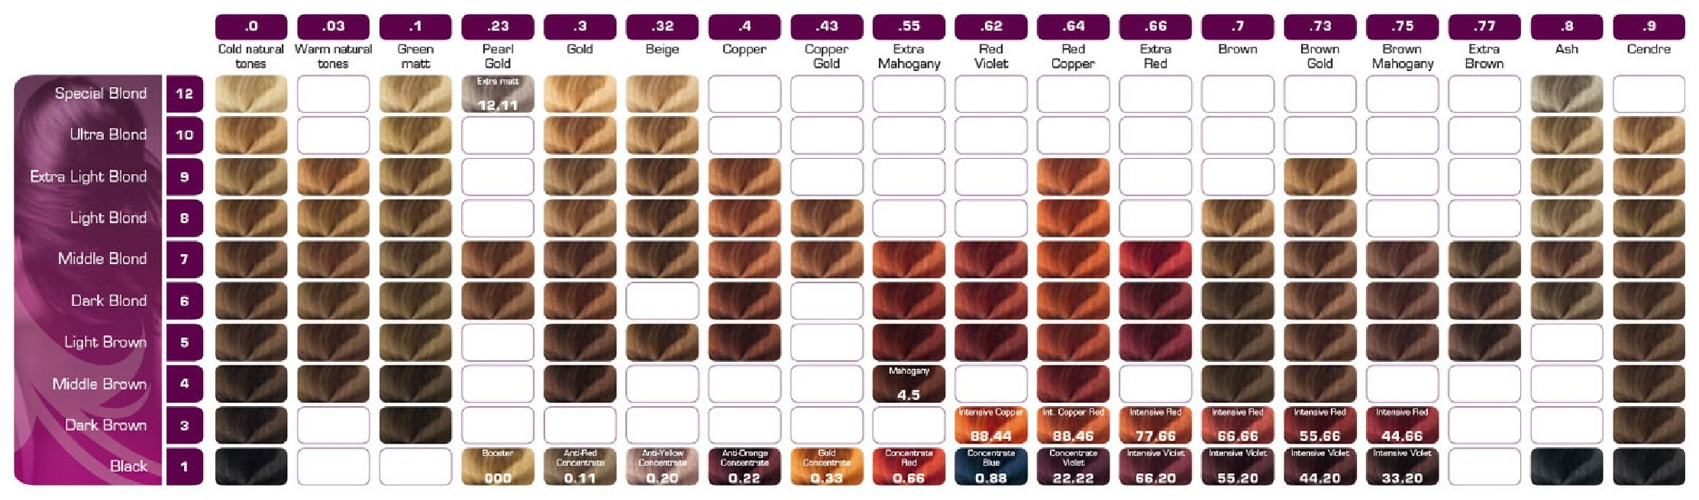 Biowomanchart by gbrayong flipsnack berrywell color chart published on feb 28 nvjuhfo Gallery